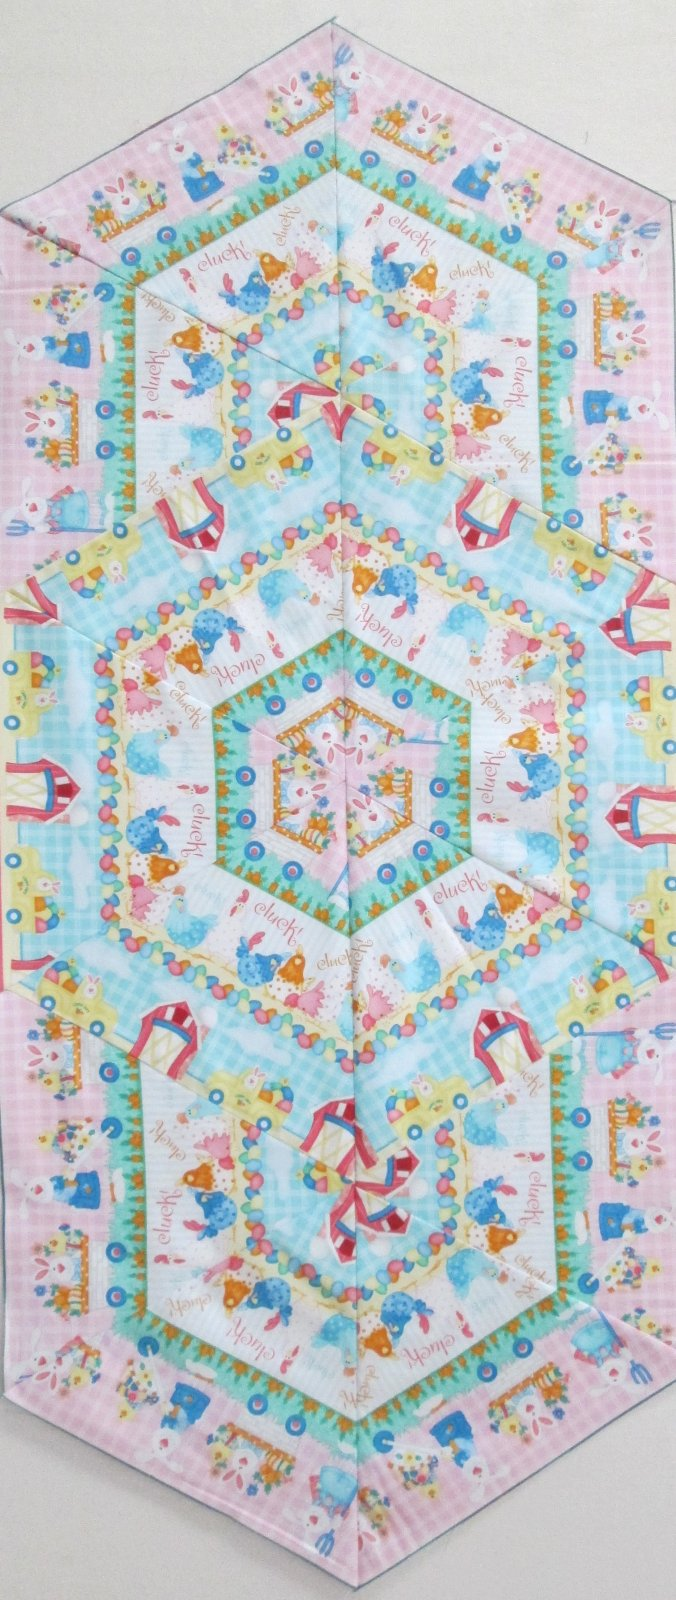 Down on the Bunny Farm Triangle Frenzy Table Runner Kit